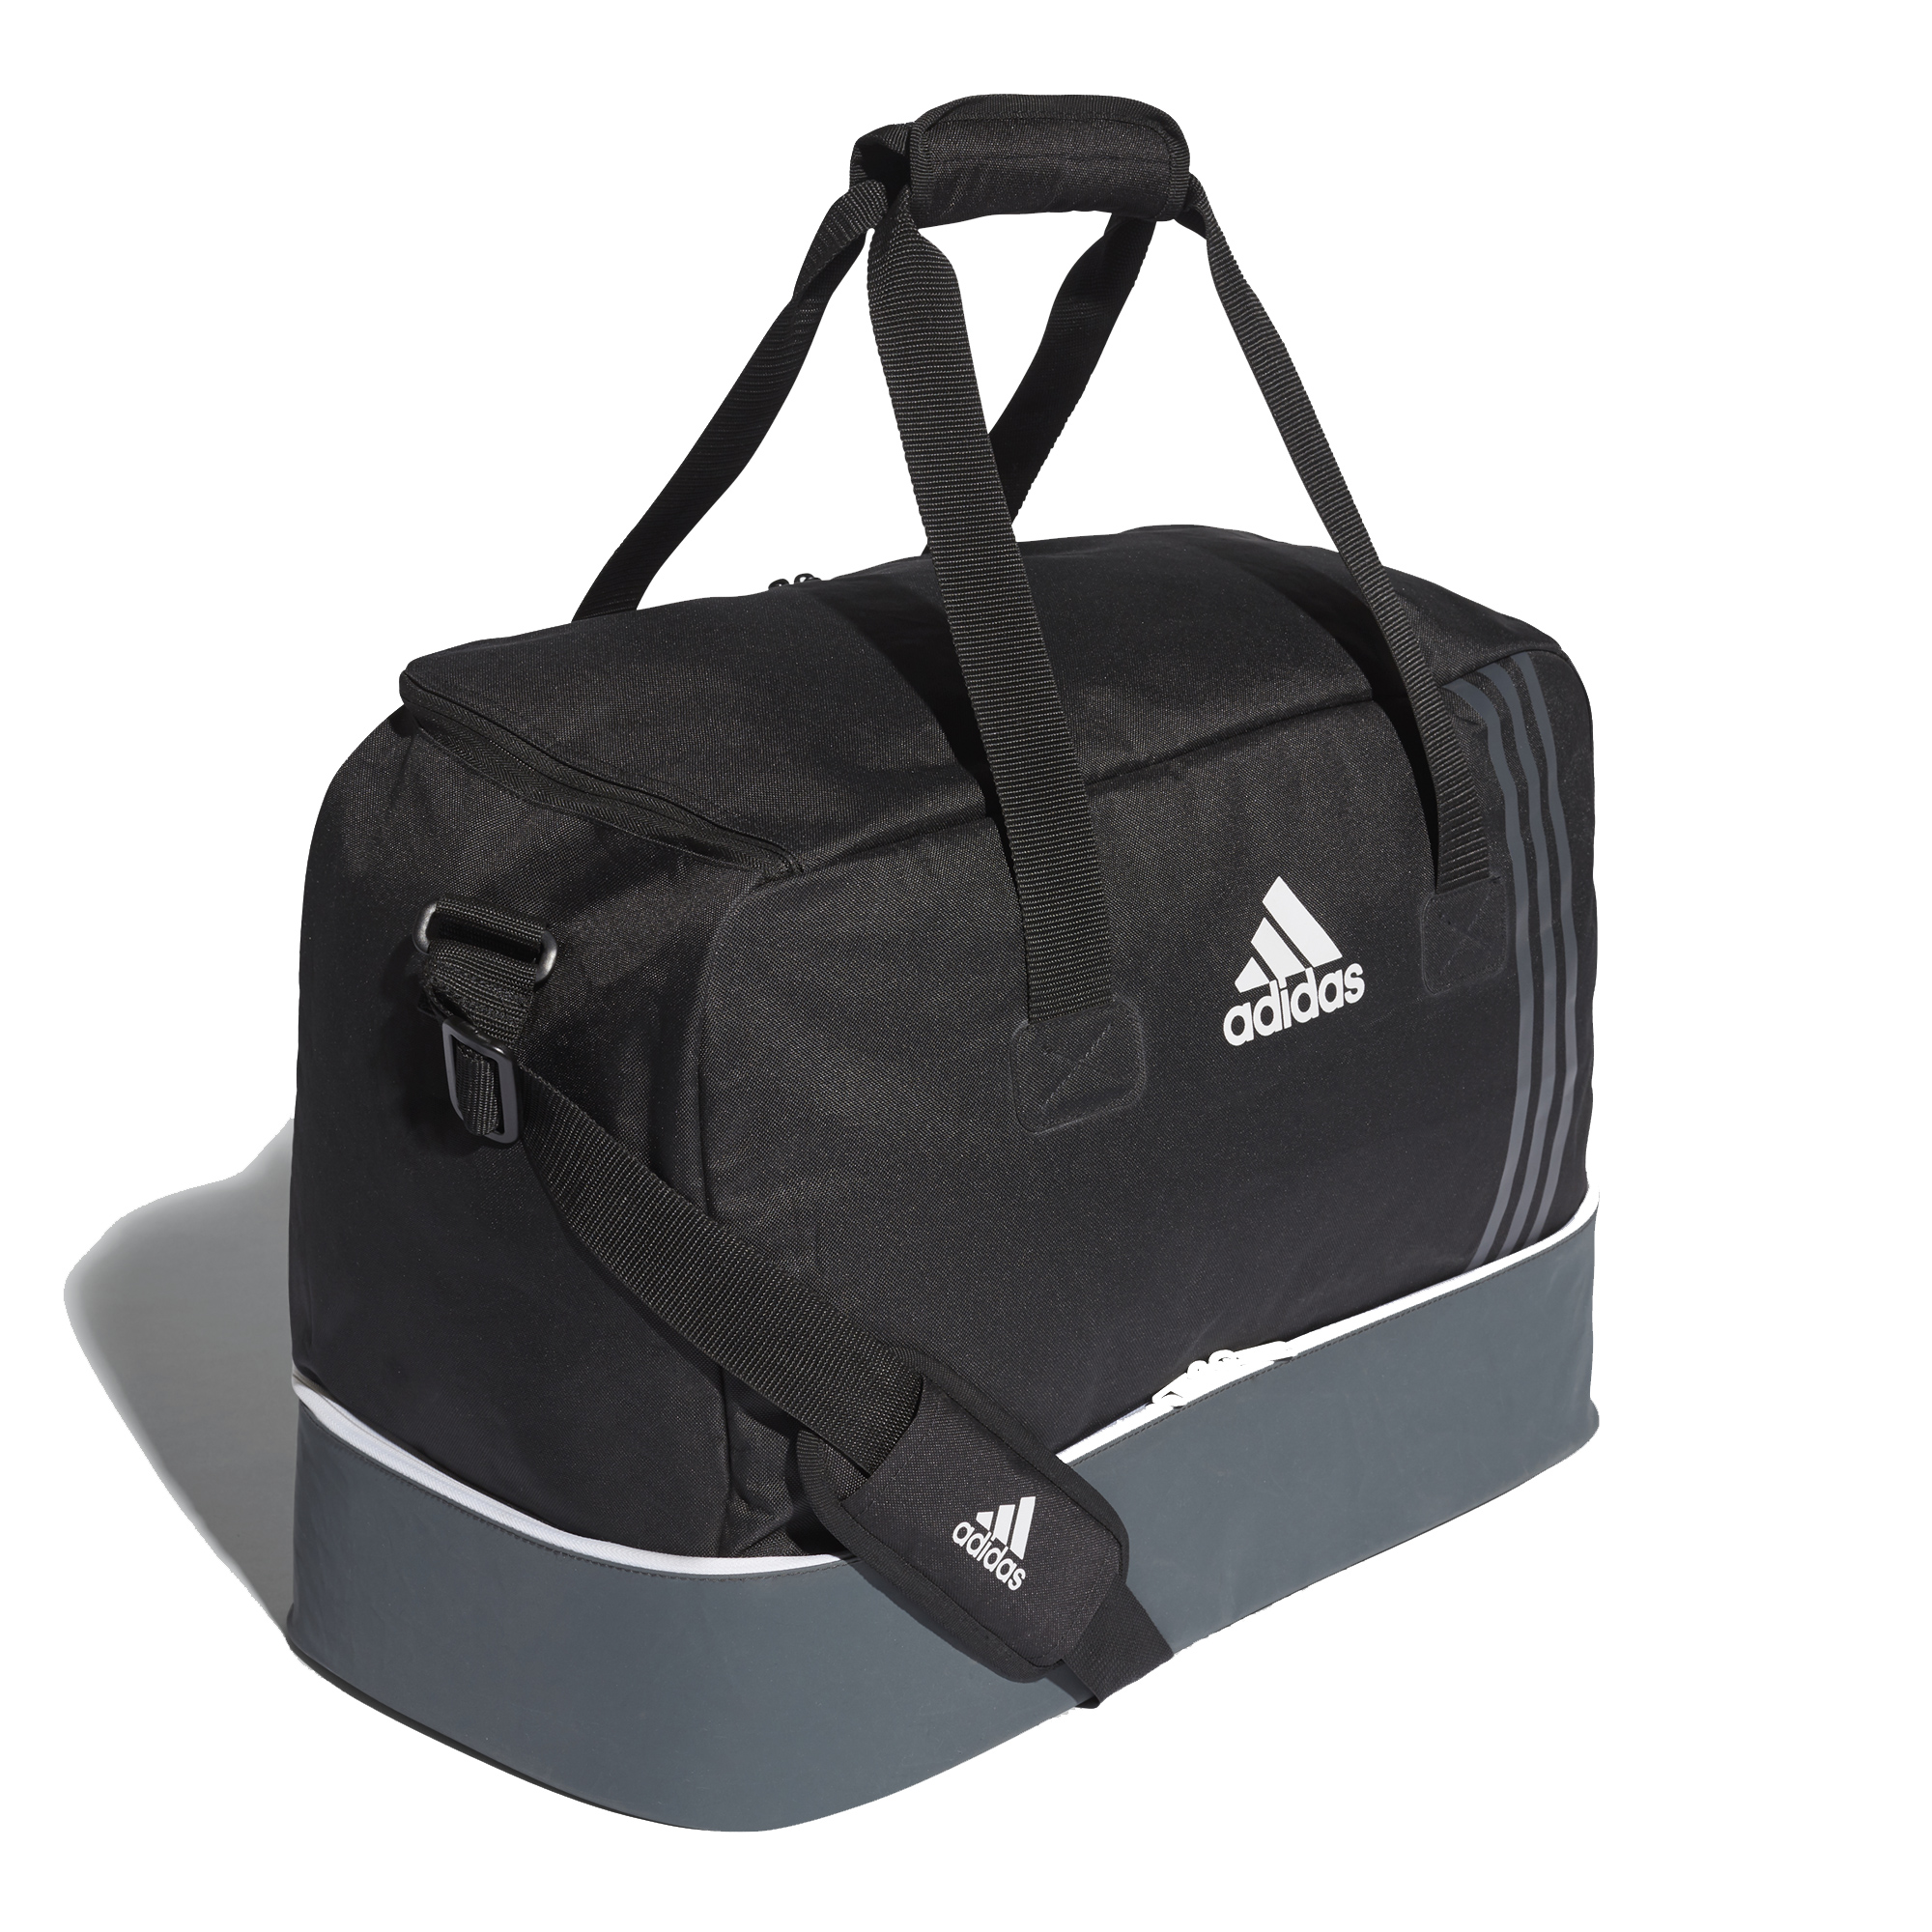 adidas-tiro-duffel-bottom-compartment-m-farbe-black-darkgrey-white-